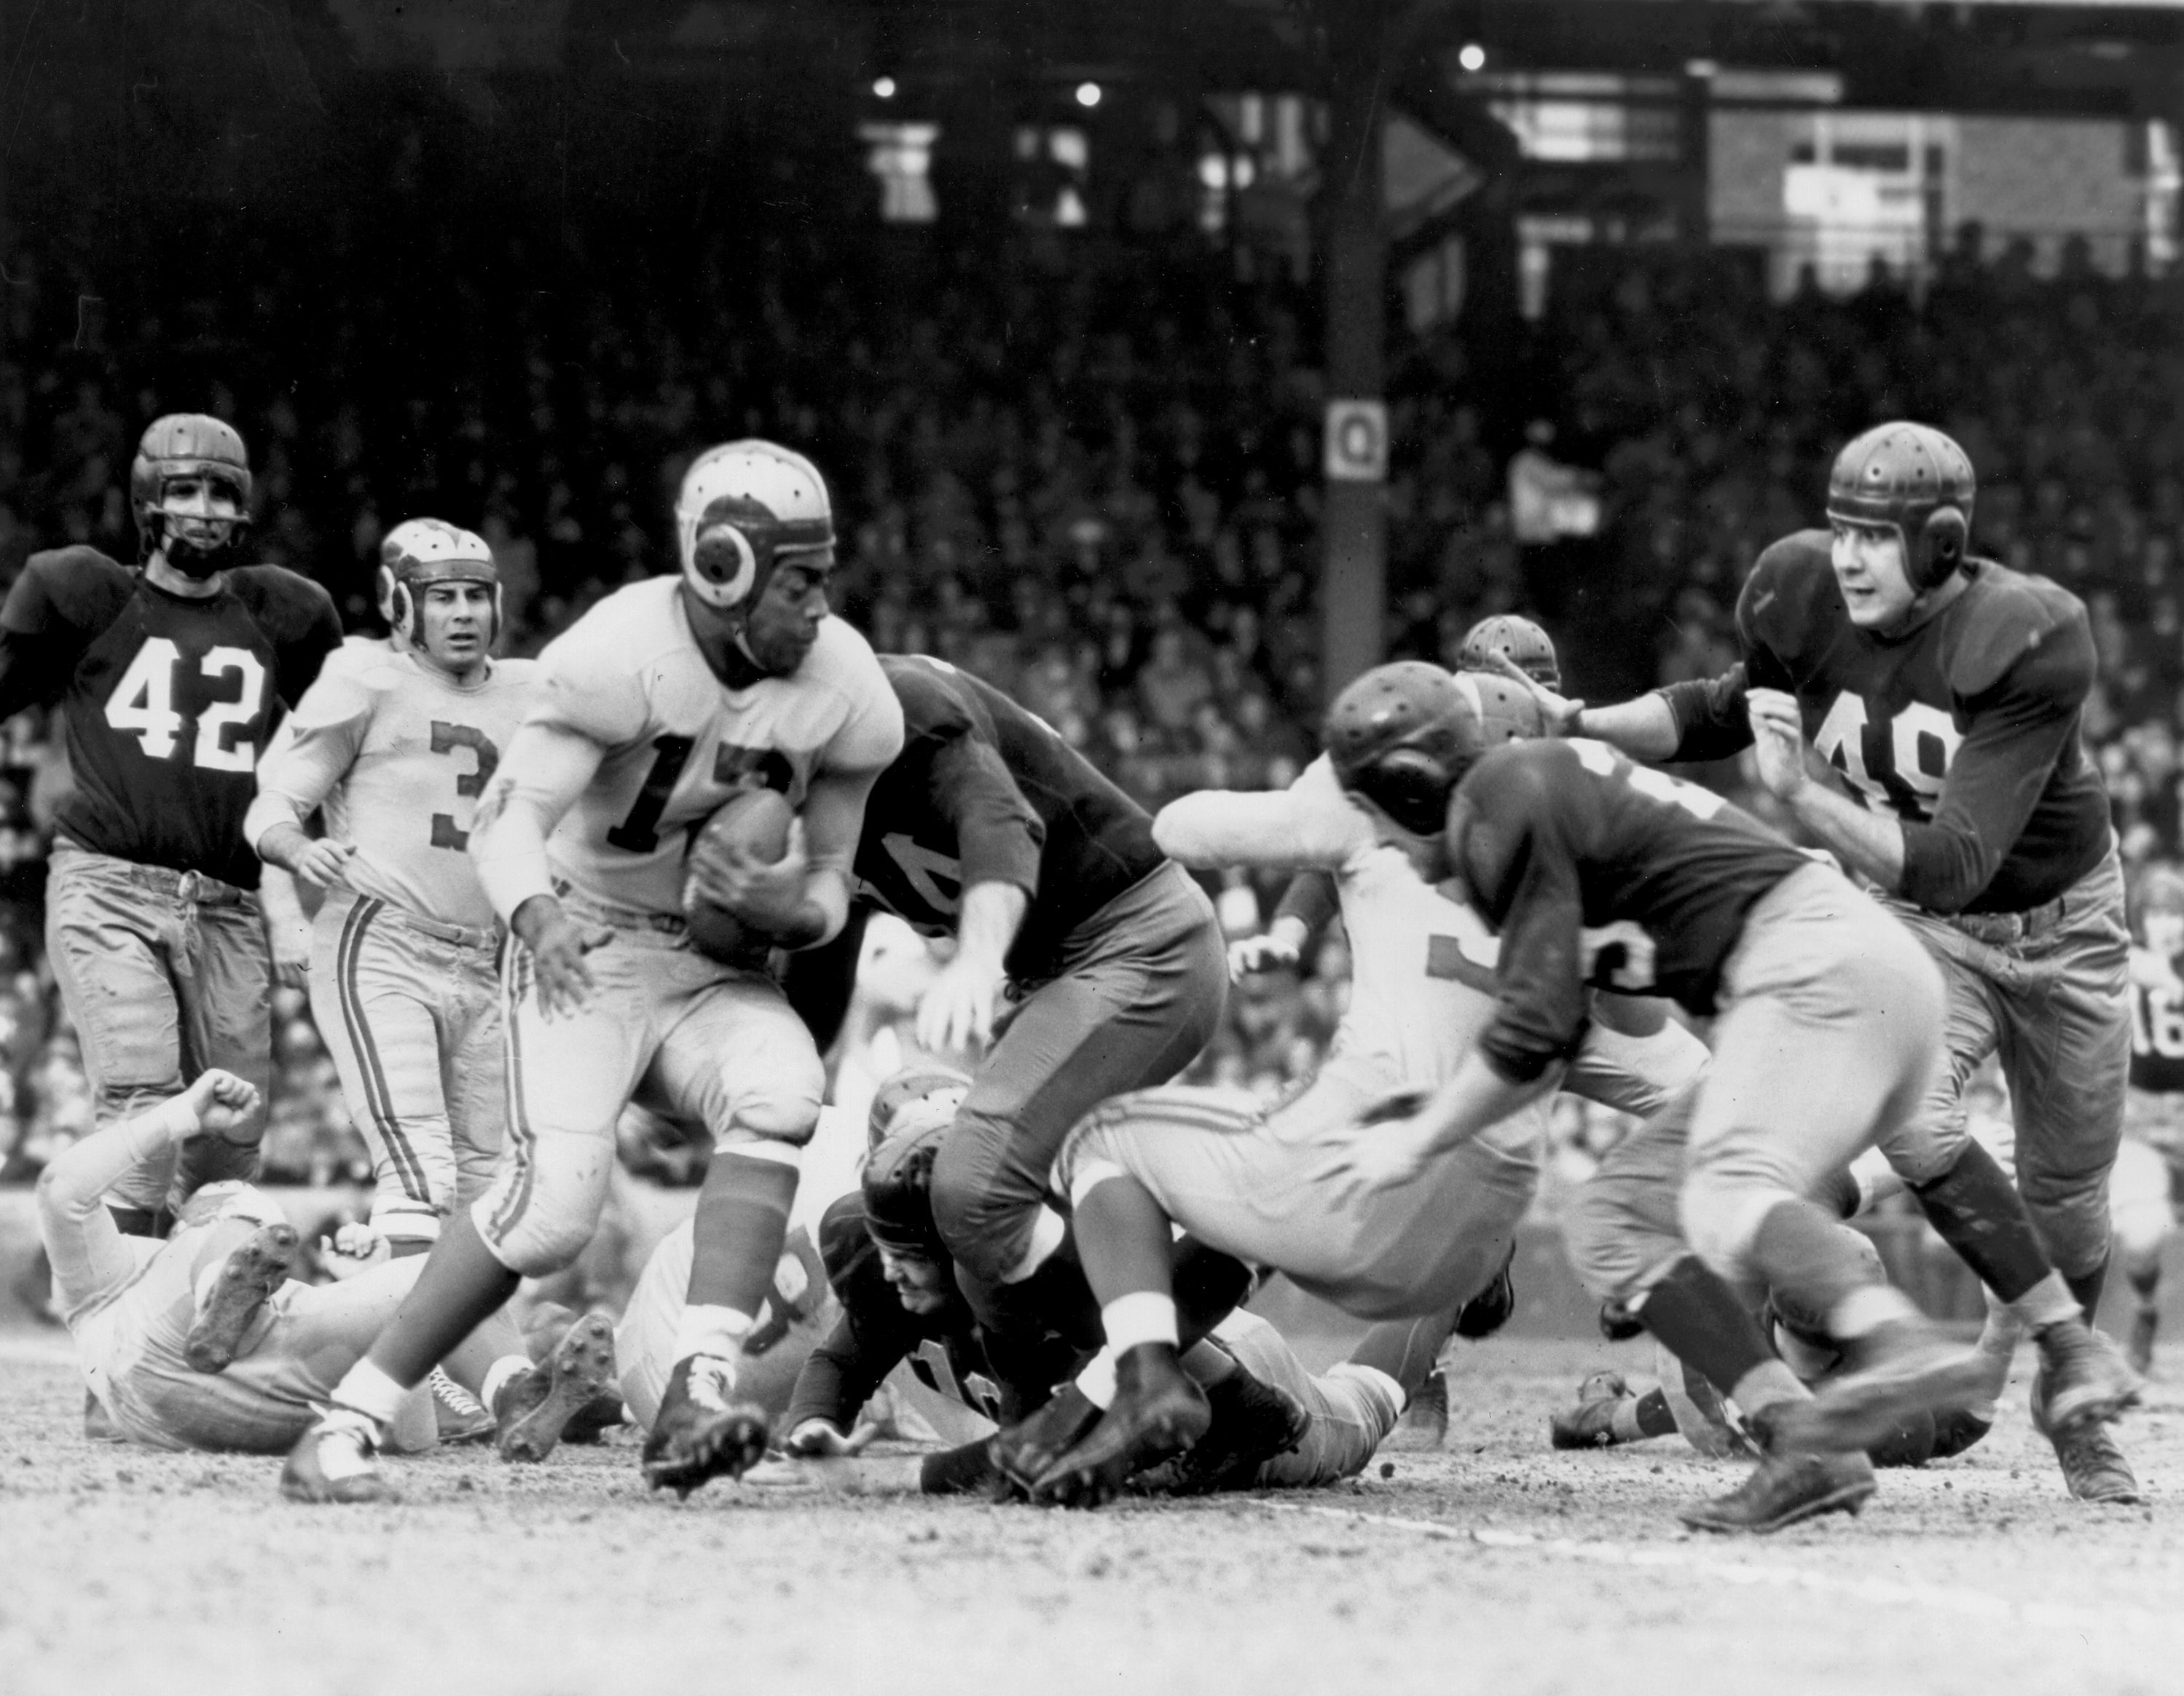 Running back Les Horvath in play in 1948